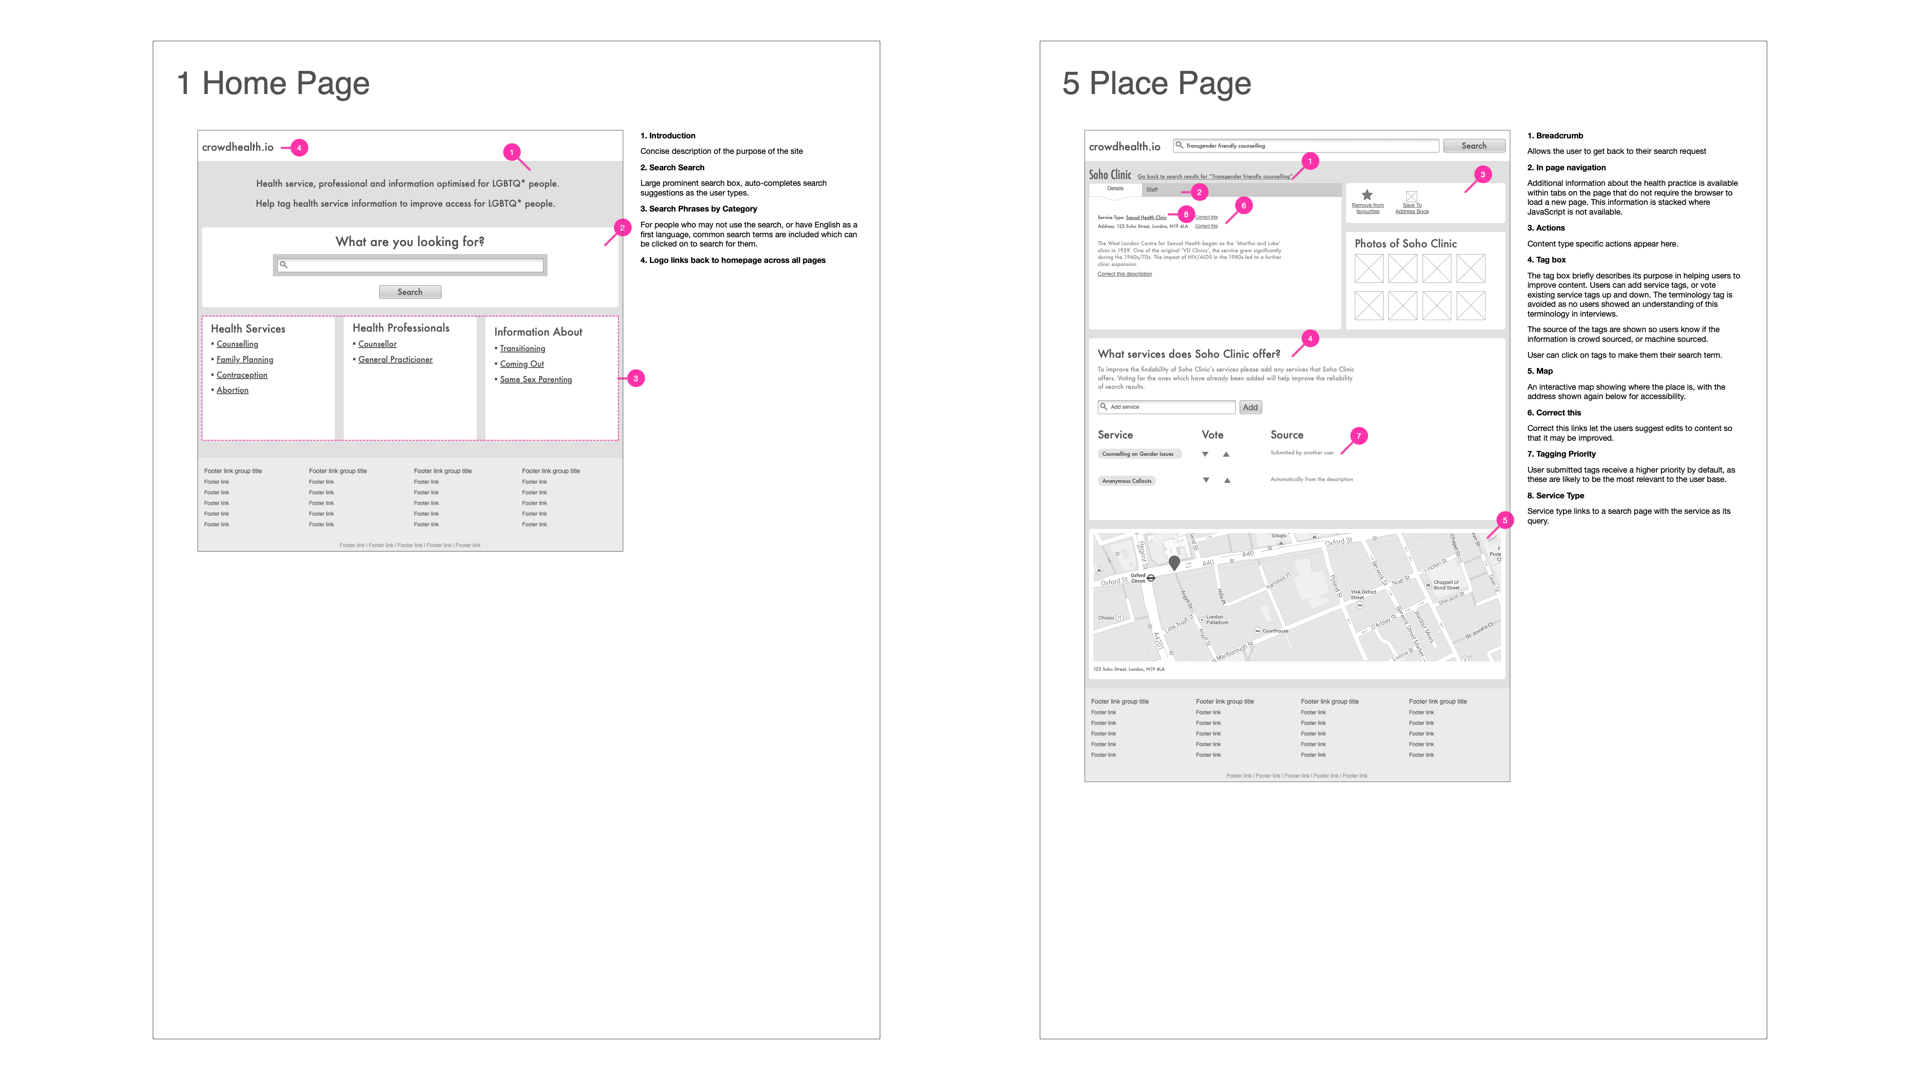 Illustrations that show the layout for pages on the website.